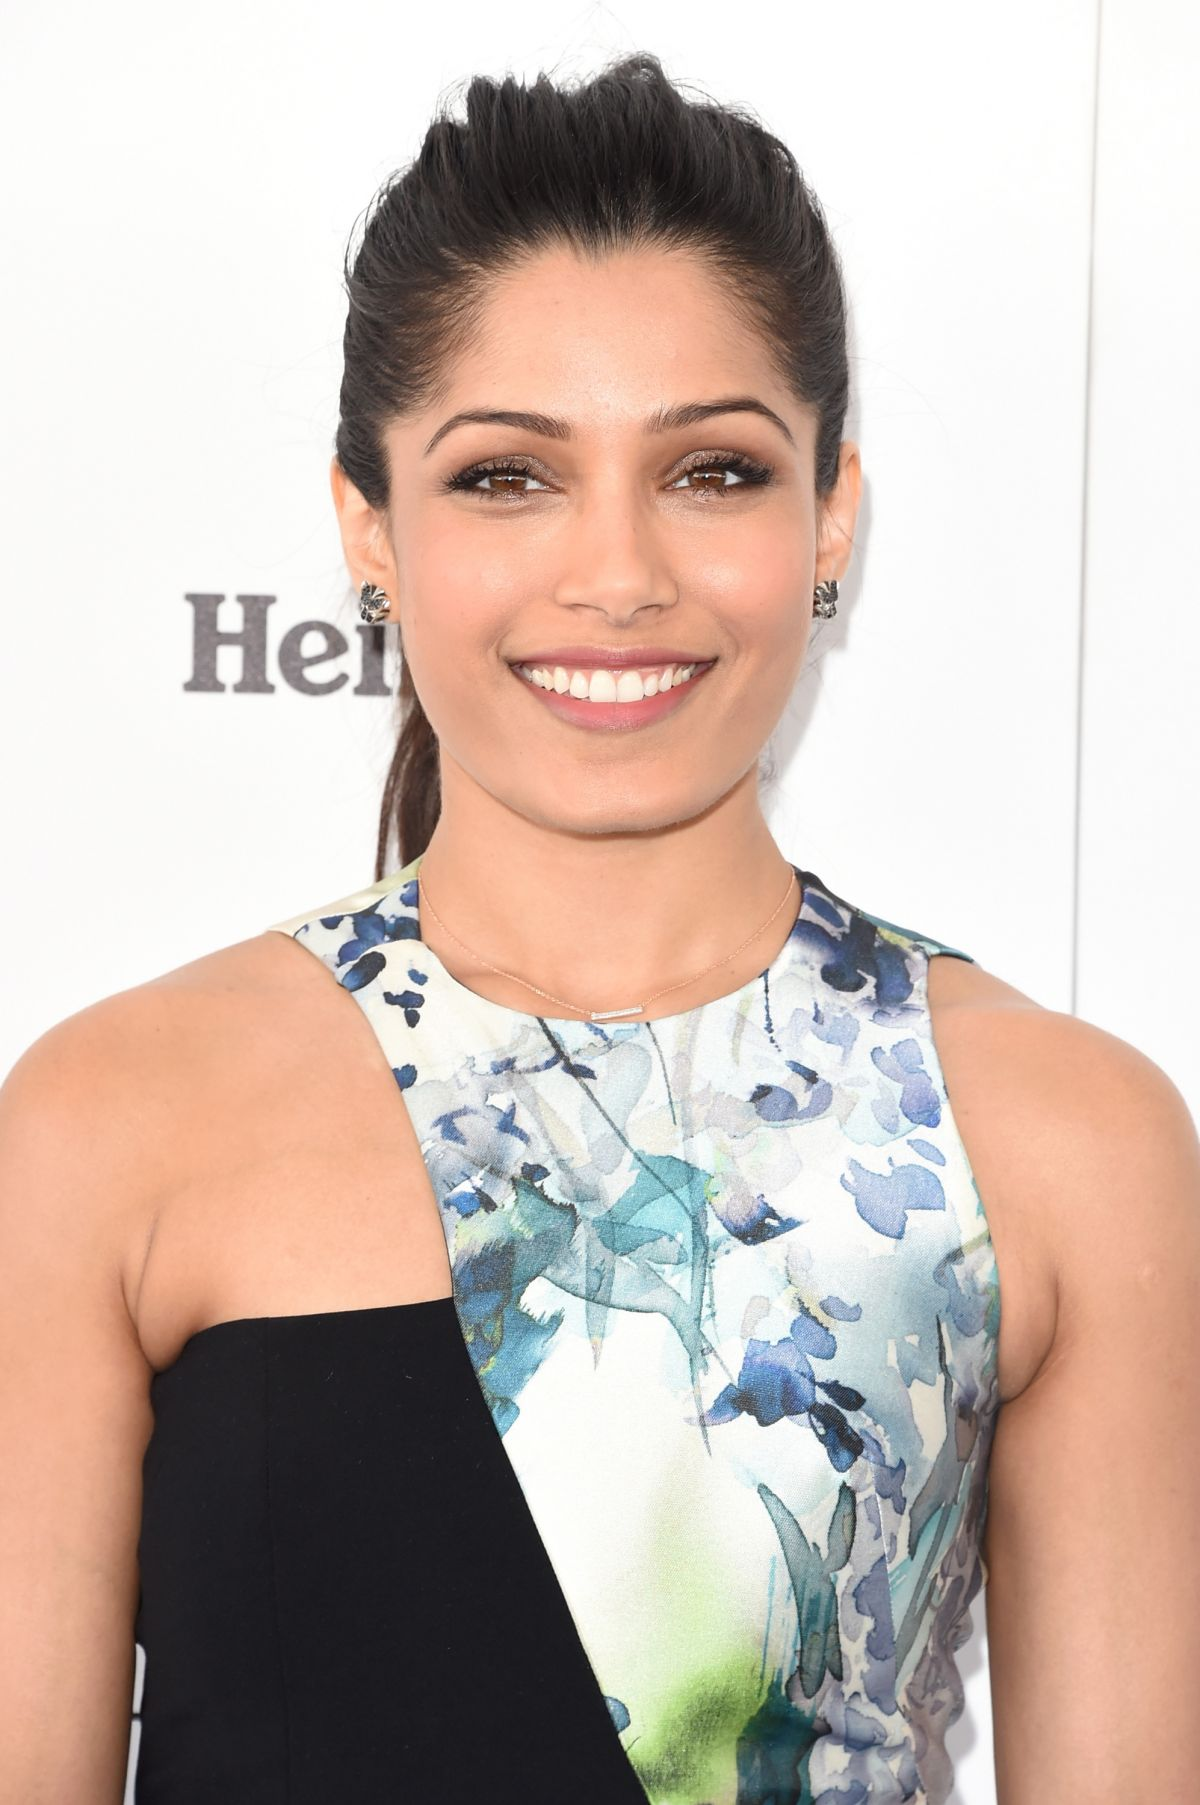 FREIDA PINTO at Film Independent Spirit Awards in Santa Monica 02/27 ... Freida Pinto